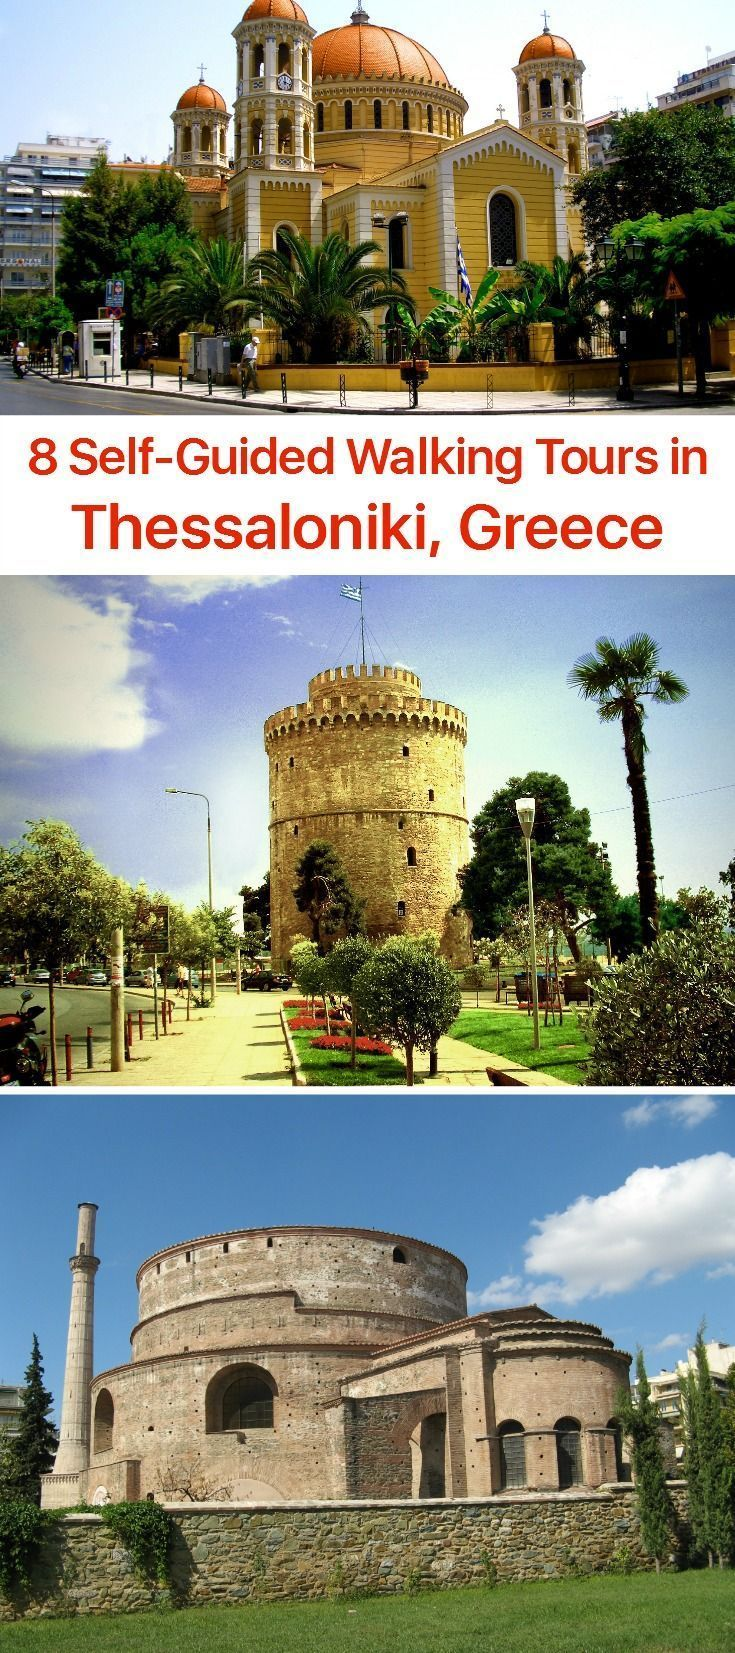 The capital of Greek Macedonia (homeland of Alexander the Great), Thessaloniki is a major economic and political center, second largest in Greece. Many of the country's greatest musicians, artists and poets originated in Thessaloniki, largely contributing to its artistic scene and hipster image. The city is also home to the Thessaloniki Film Festival and many other cultural events.